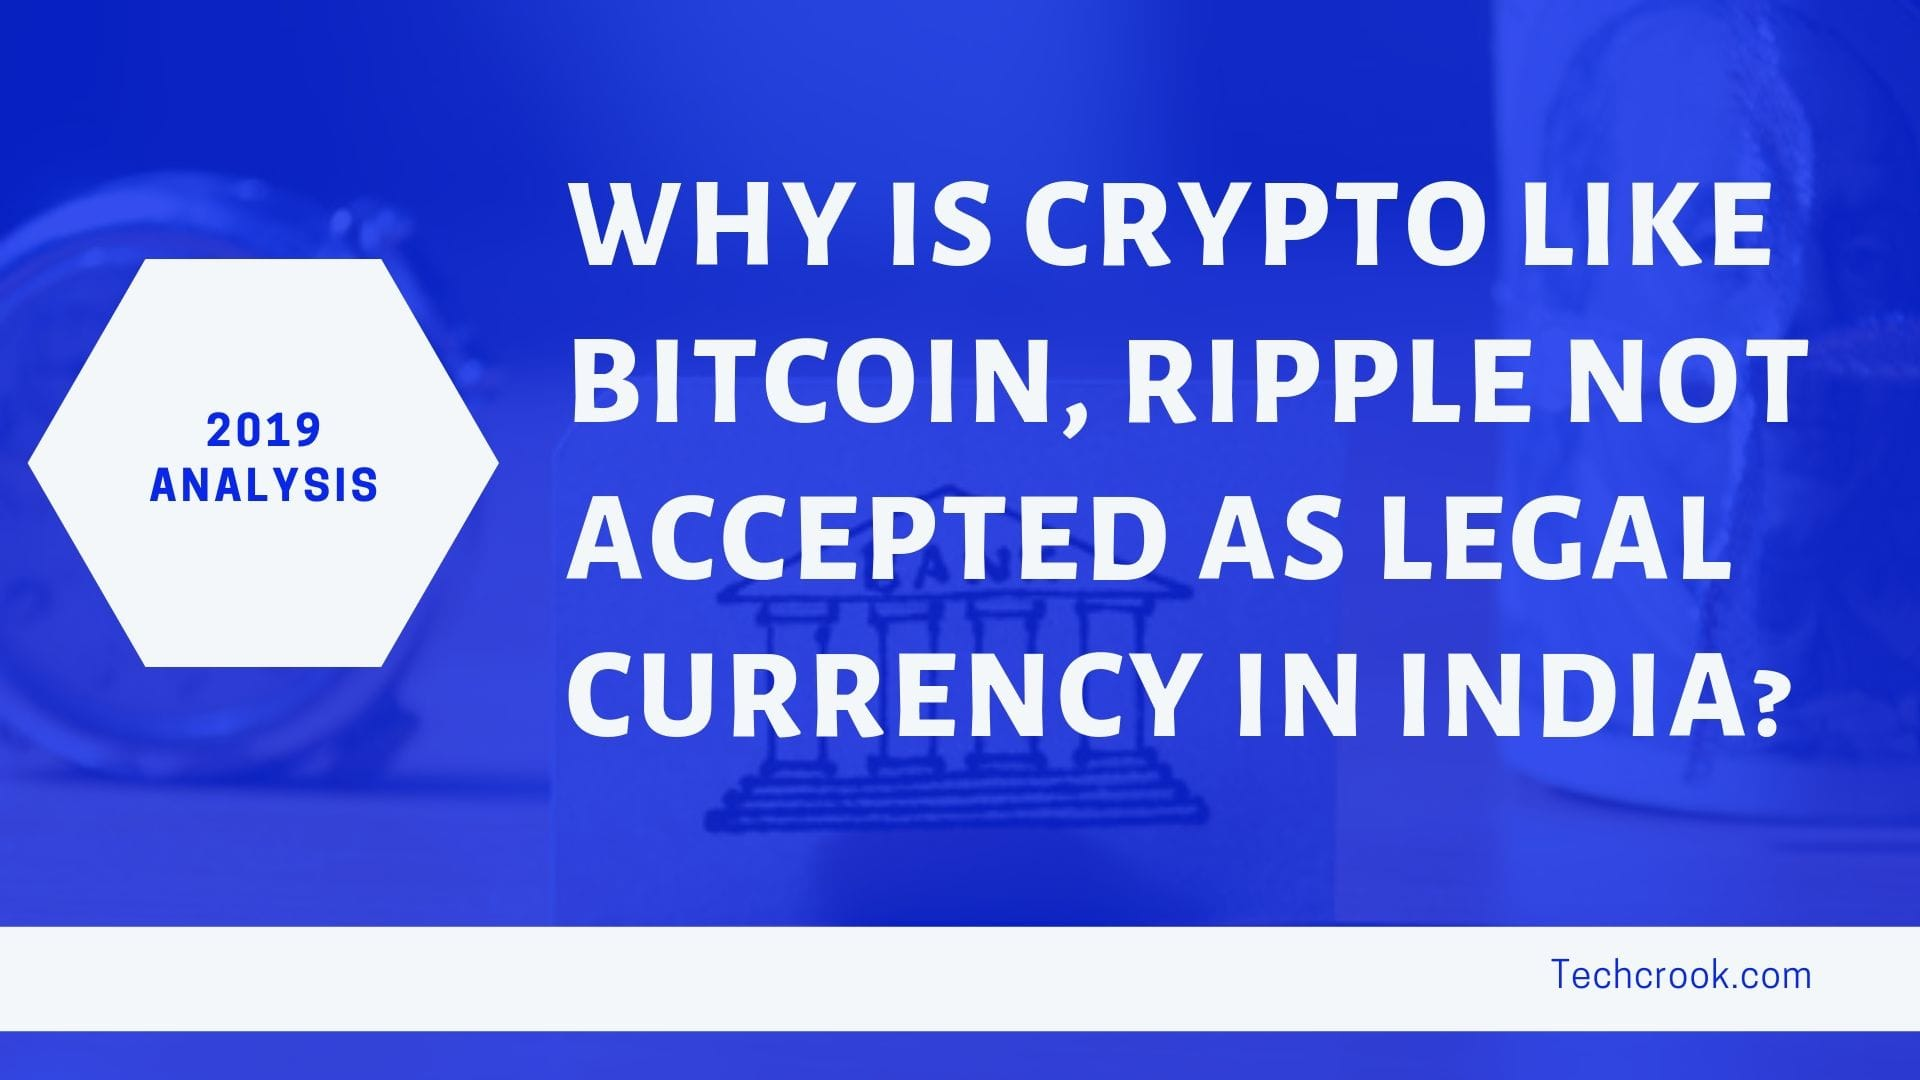 Why is cryptocurrency not accepted as legal currency in India?